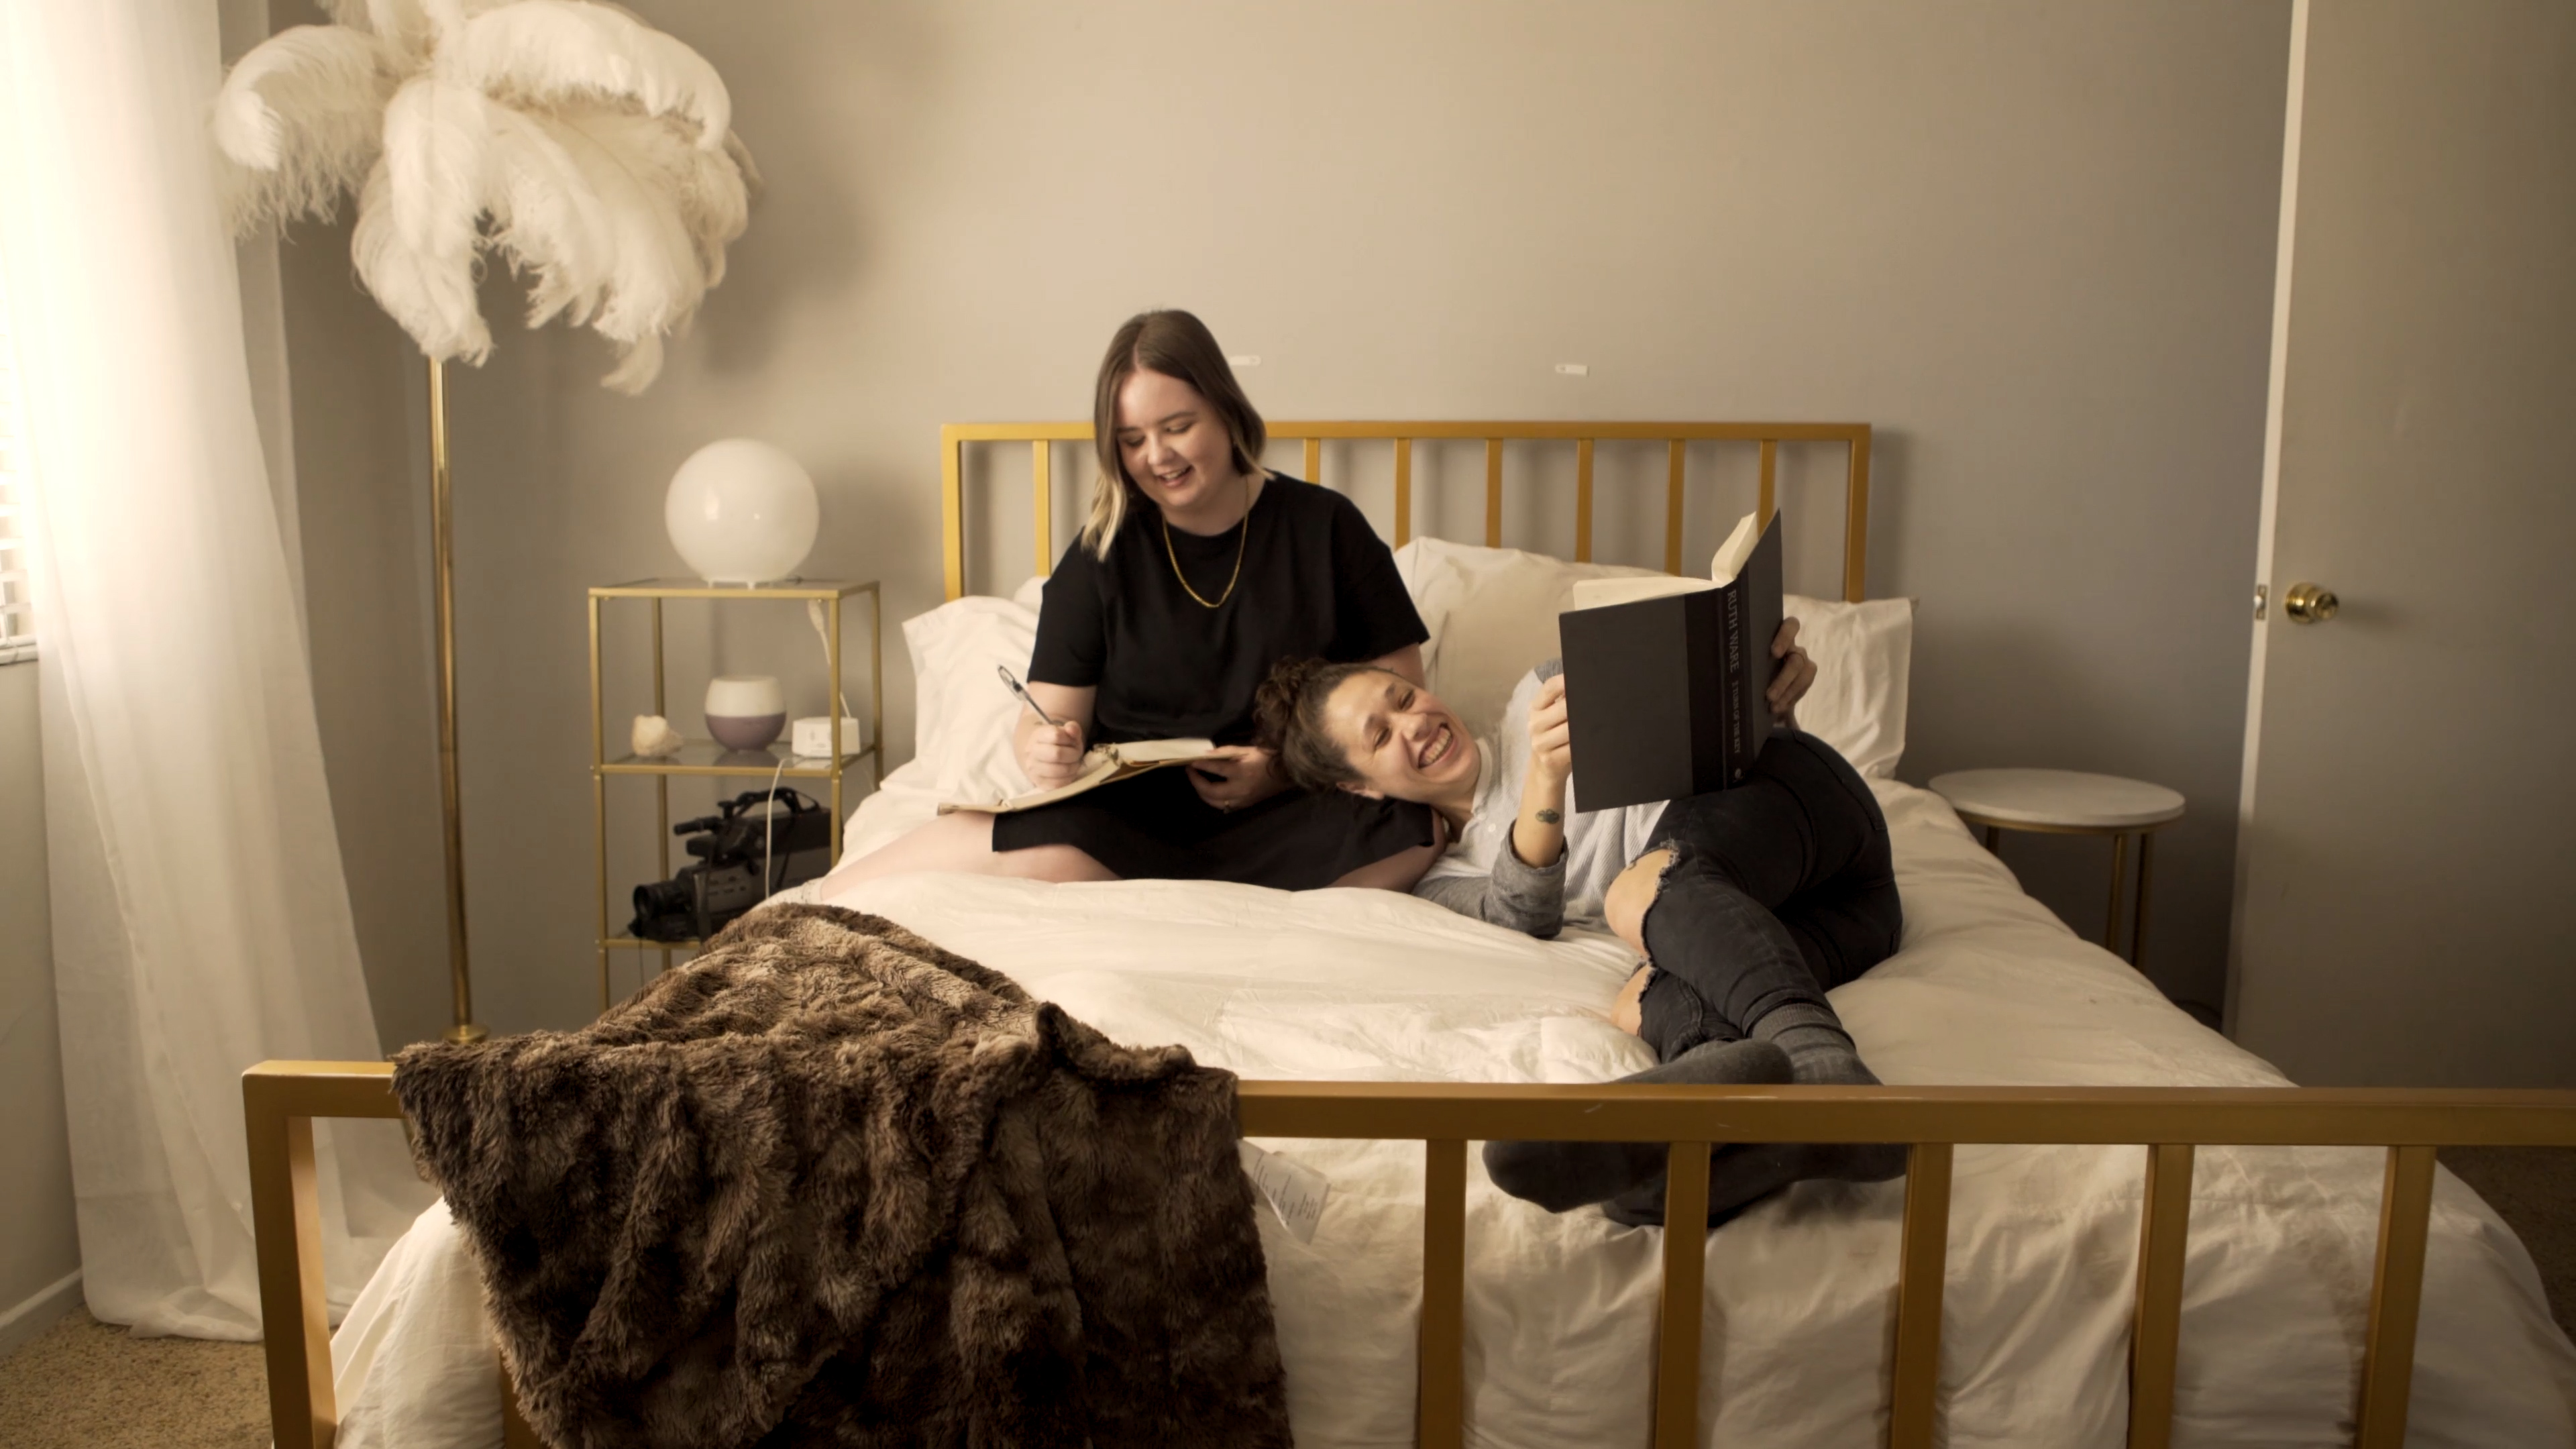 2 women sitting on a bed, laughing.